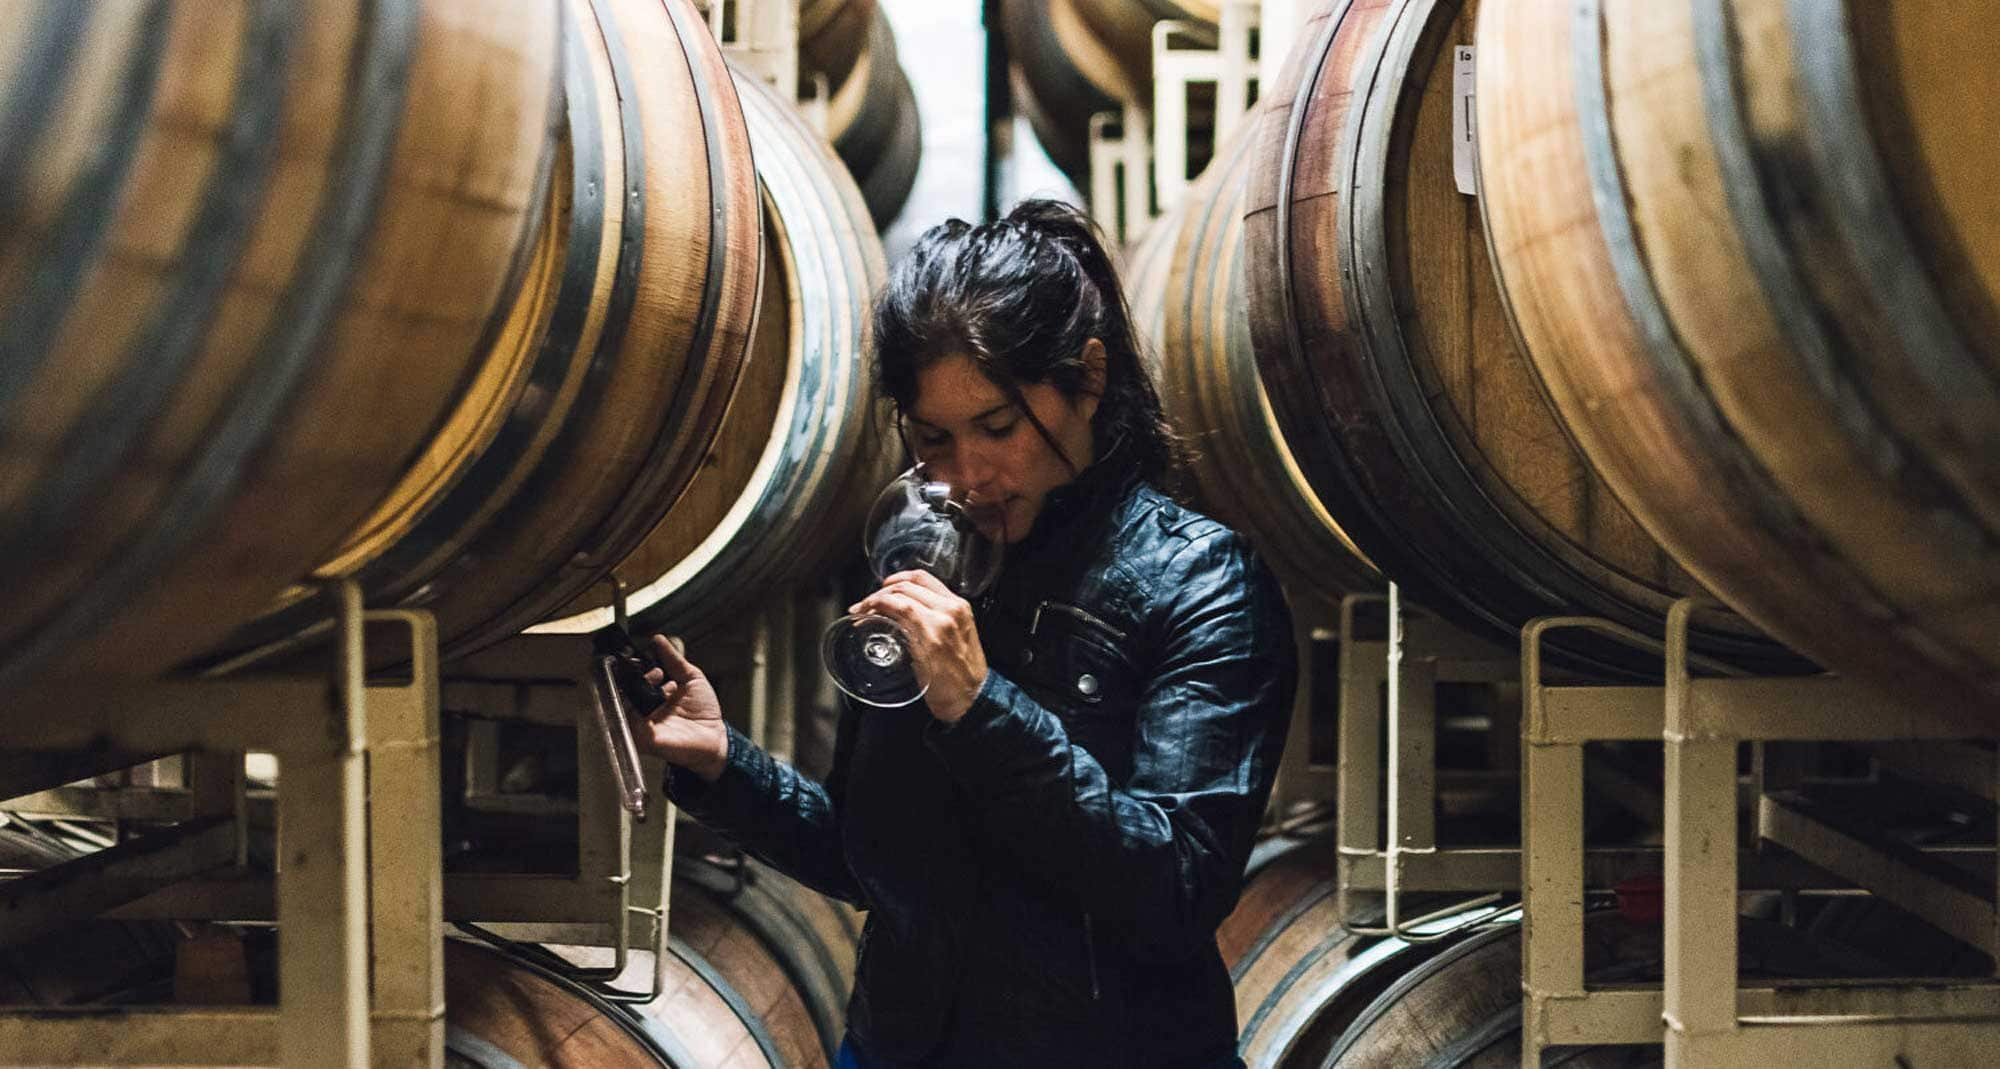 Aurora Cória smells a glass of wine while standing between barrels.